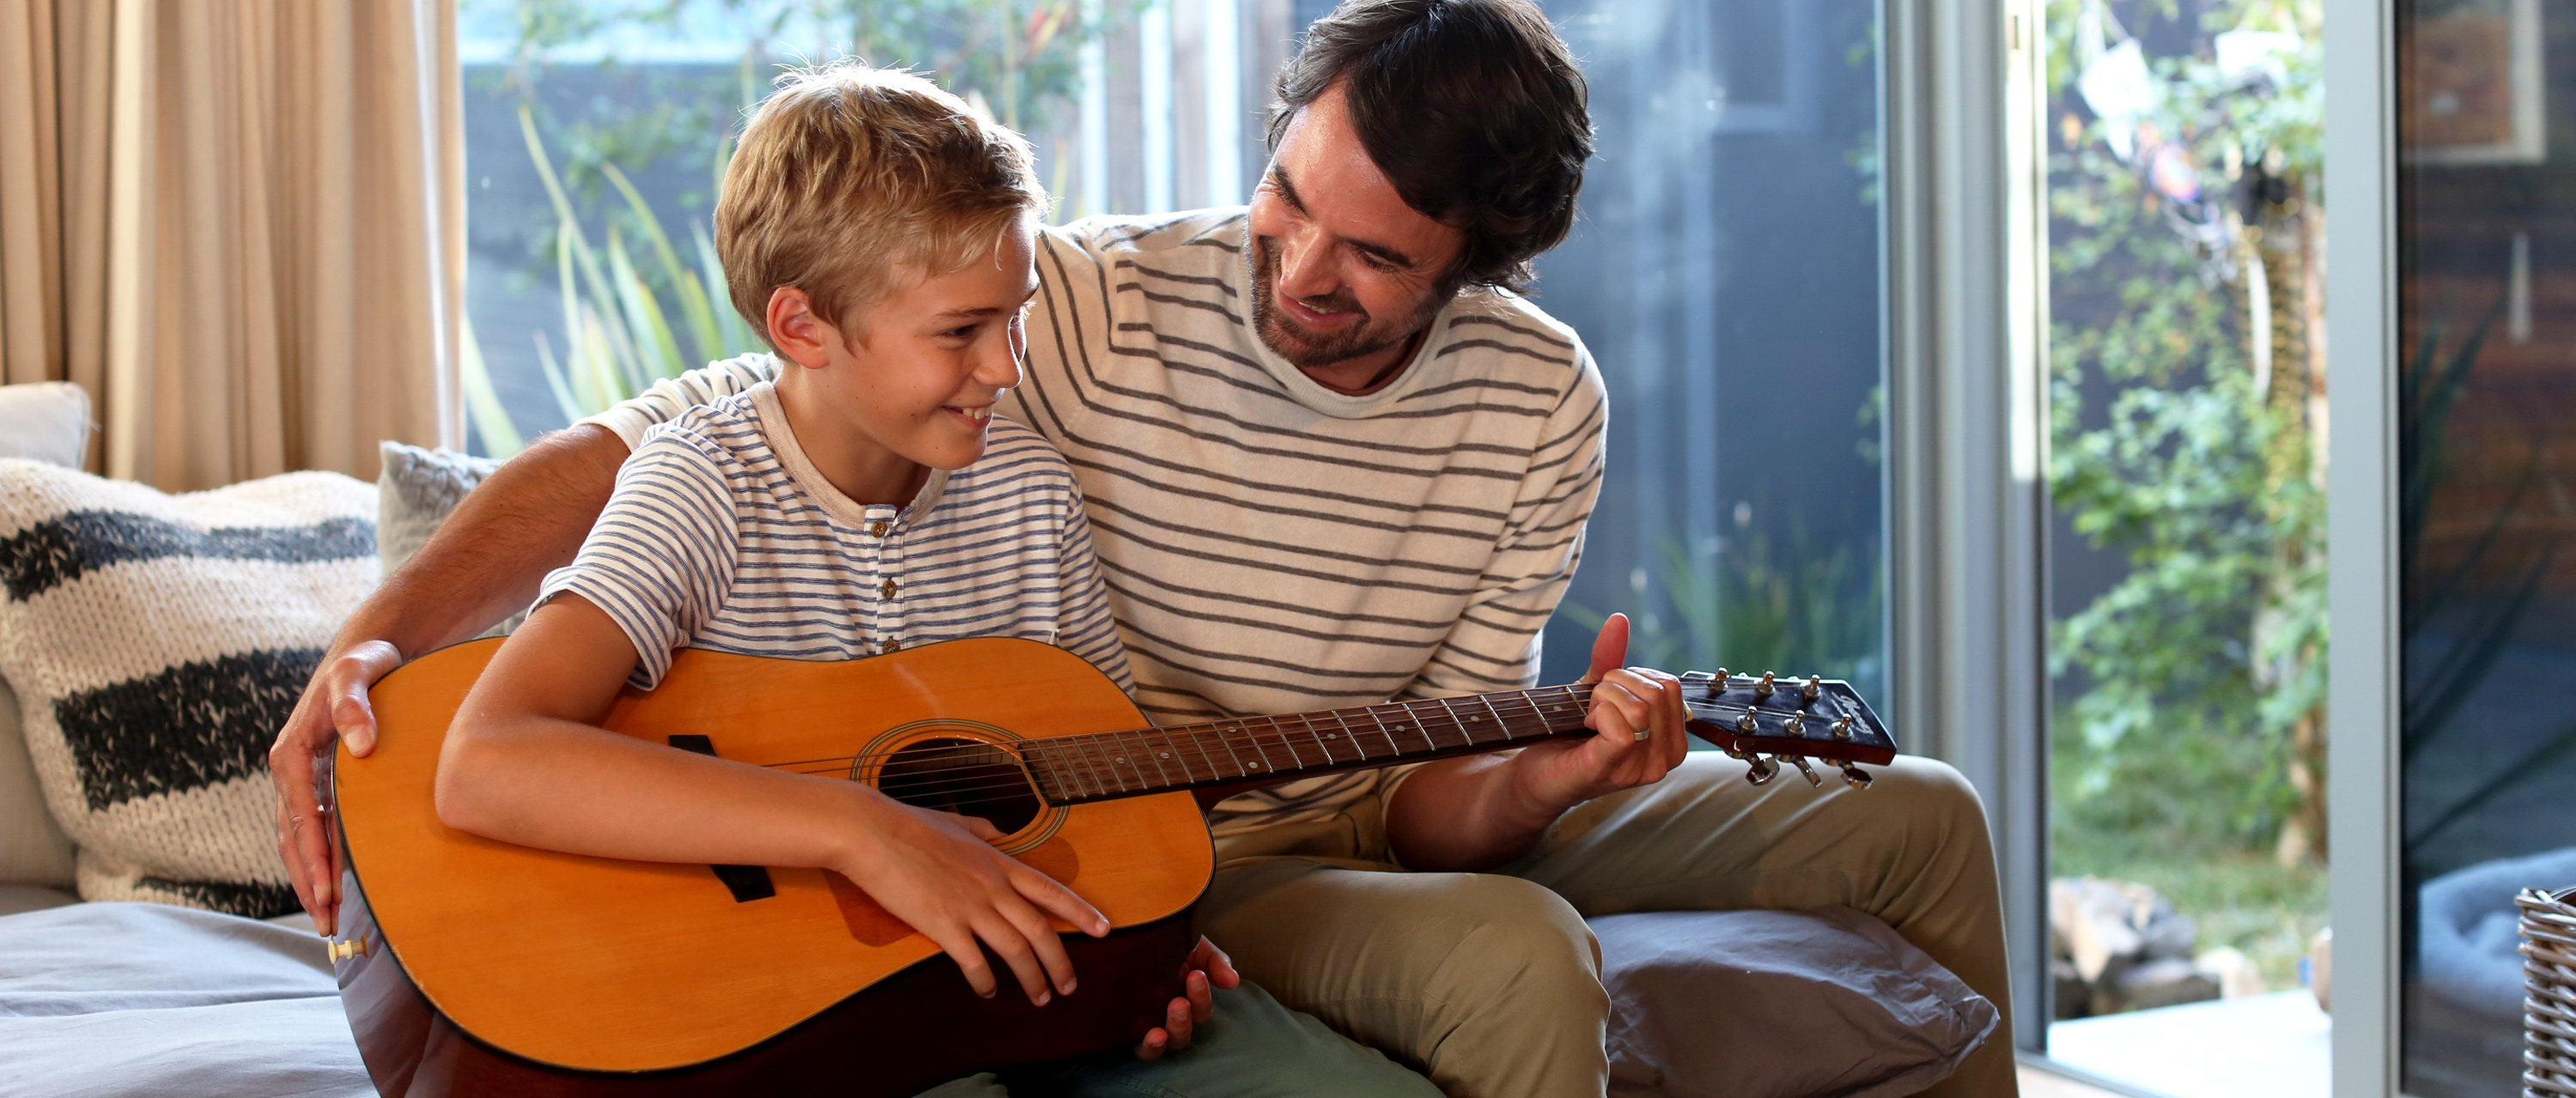 Father plays the guitar with his son